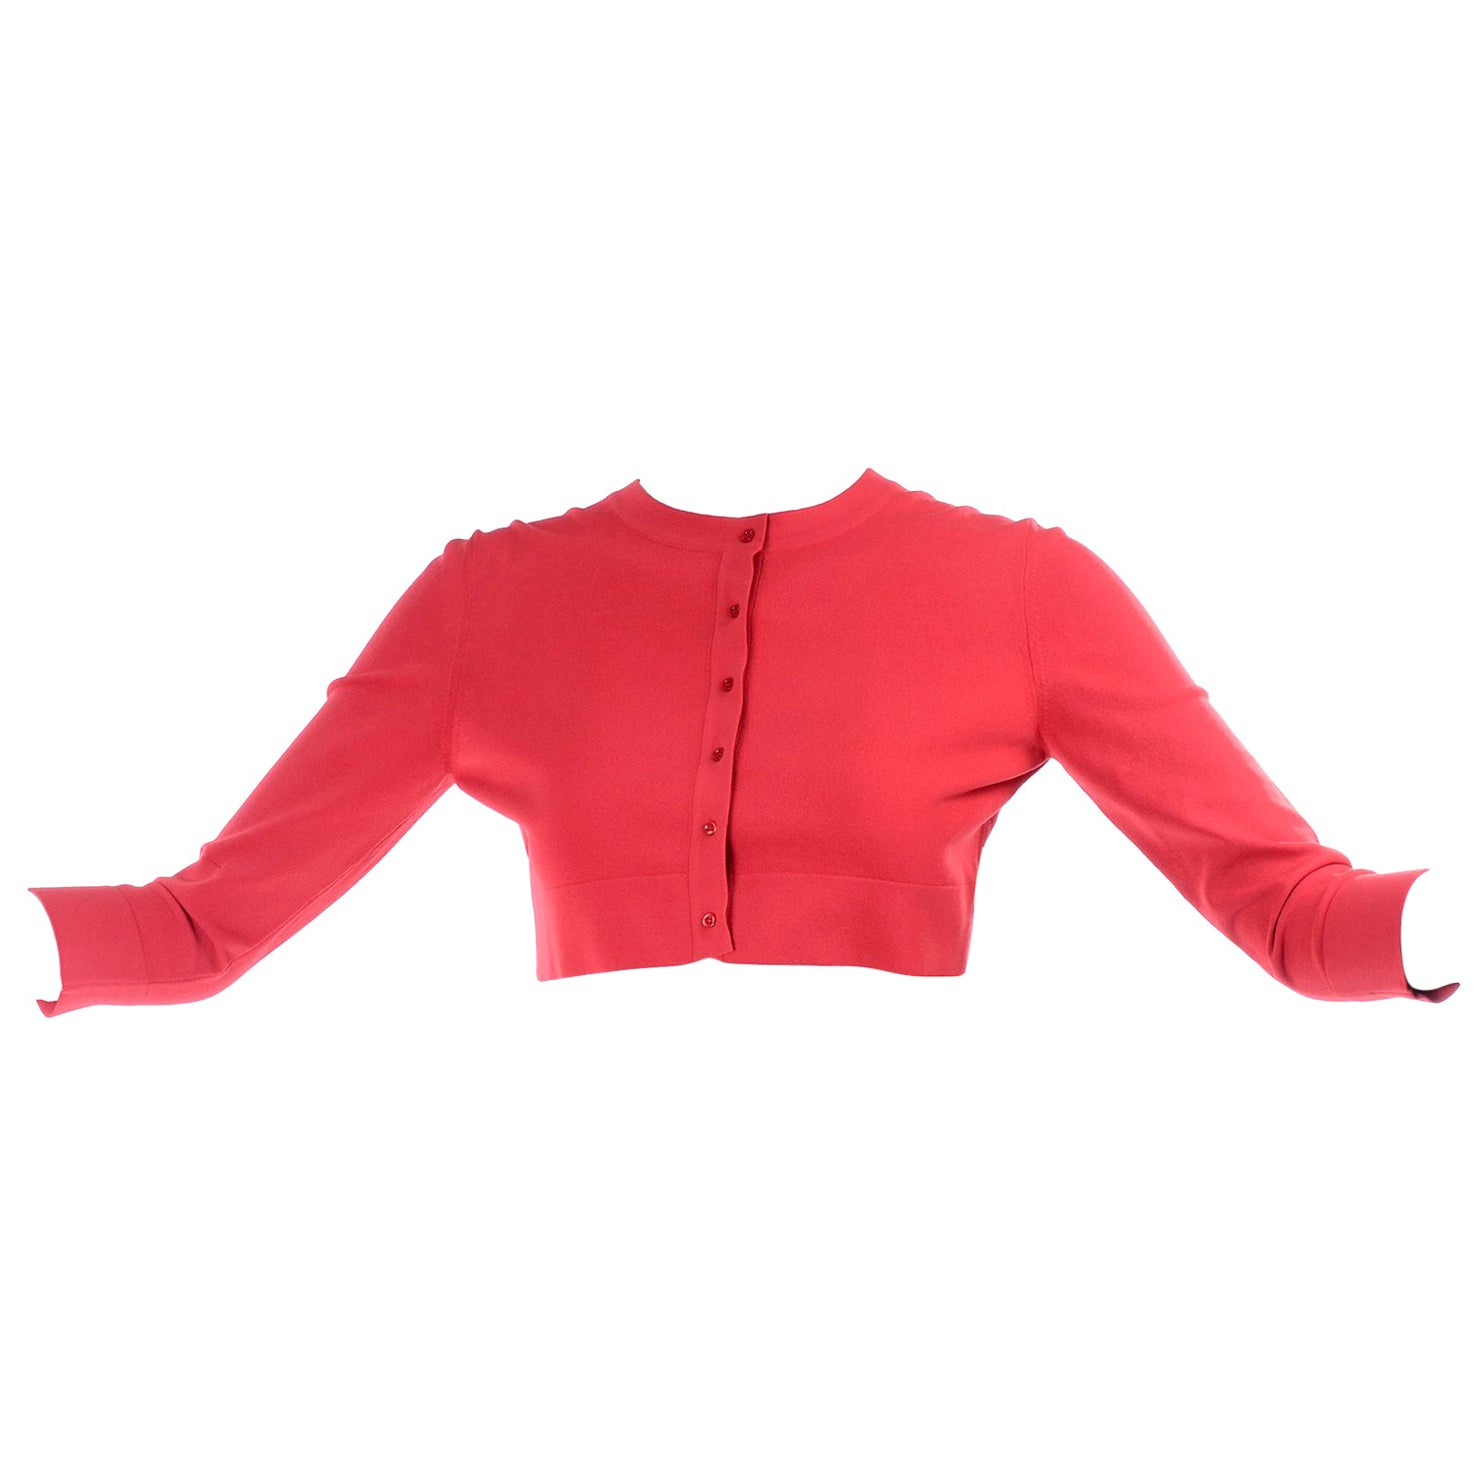 Azzedine Alaia Deep Coral Cropped Crew Neck Sweater w/ 3/4 Length Sleeves